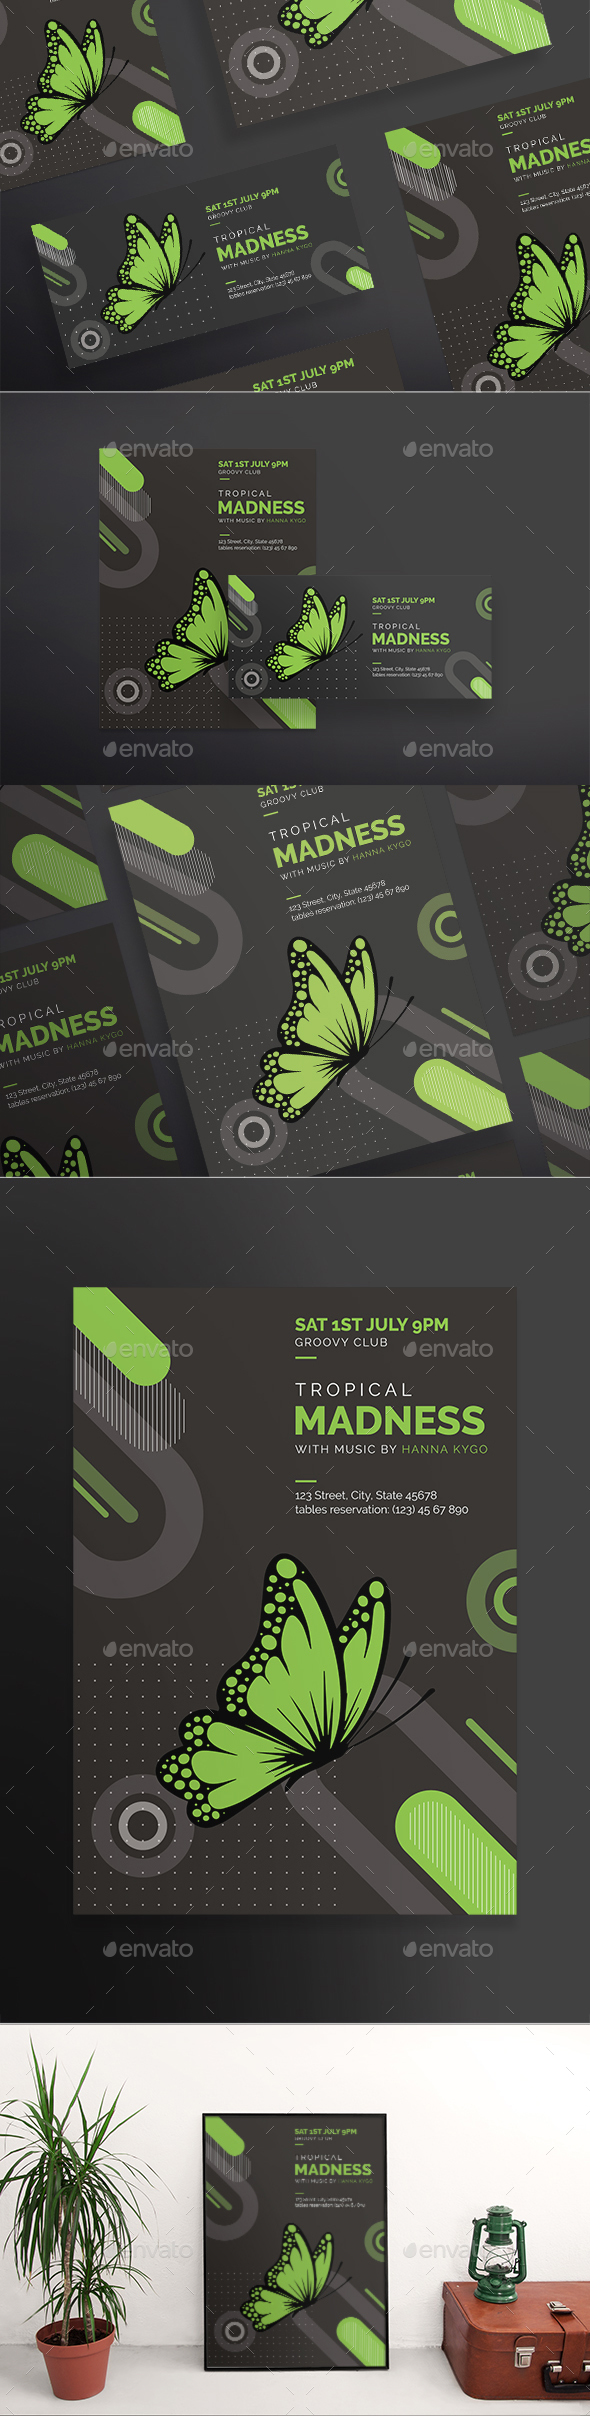 Tropical Madness Flyers - Clubs & Parties Events